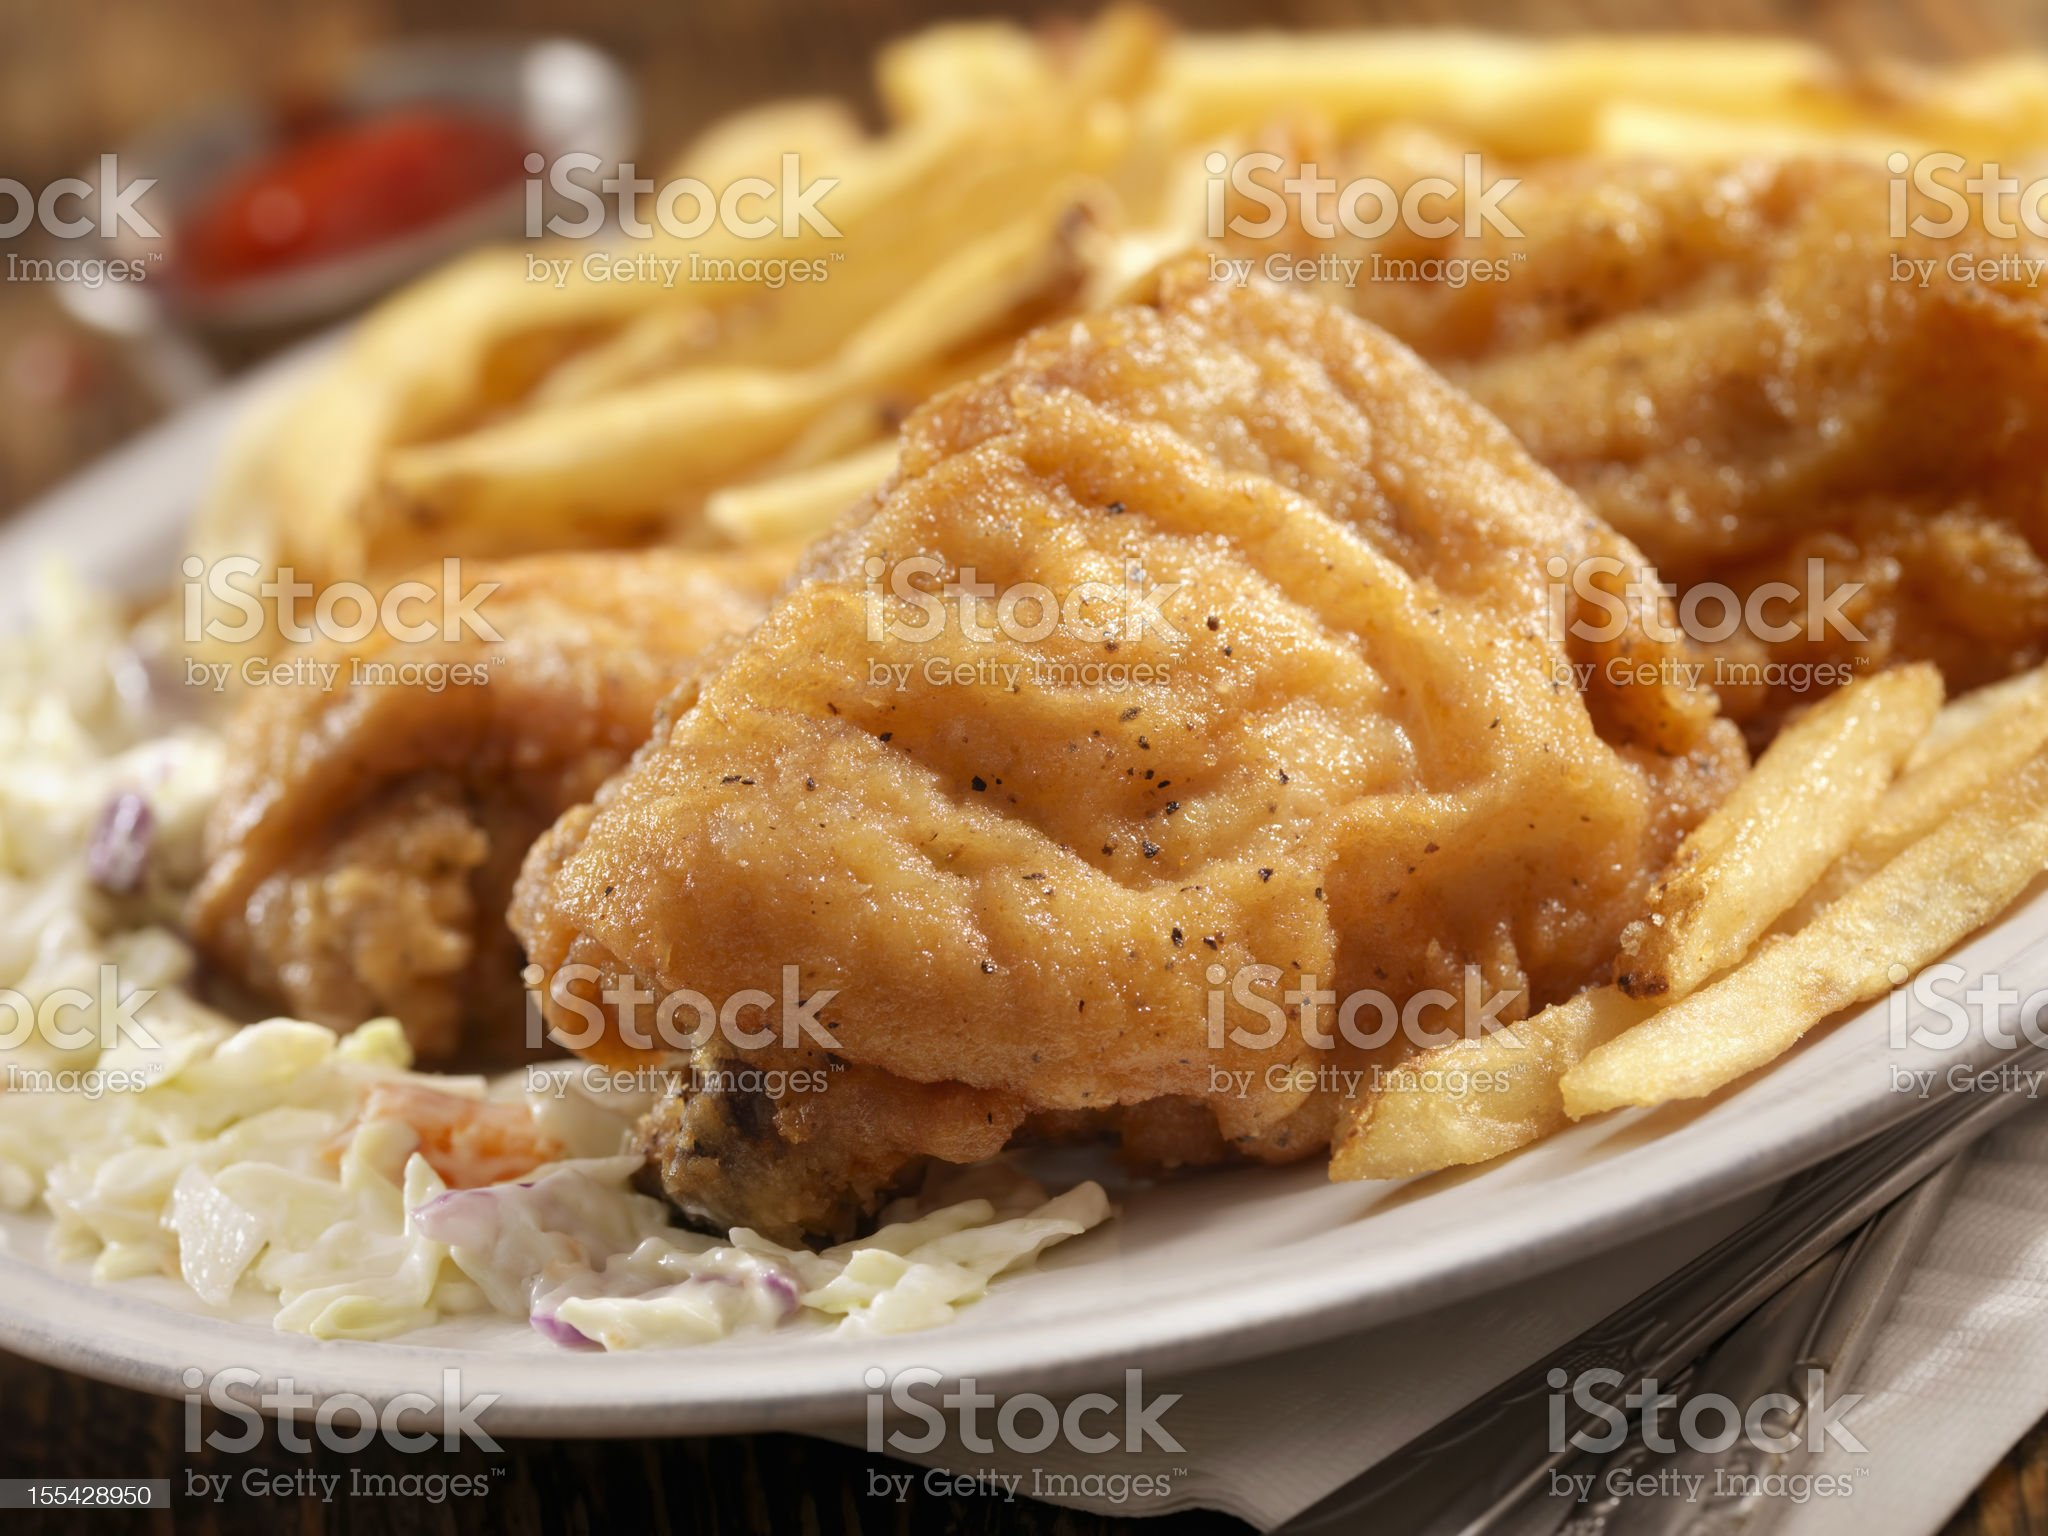 Fried Chicken with French Fries royalty-free stock photo